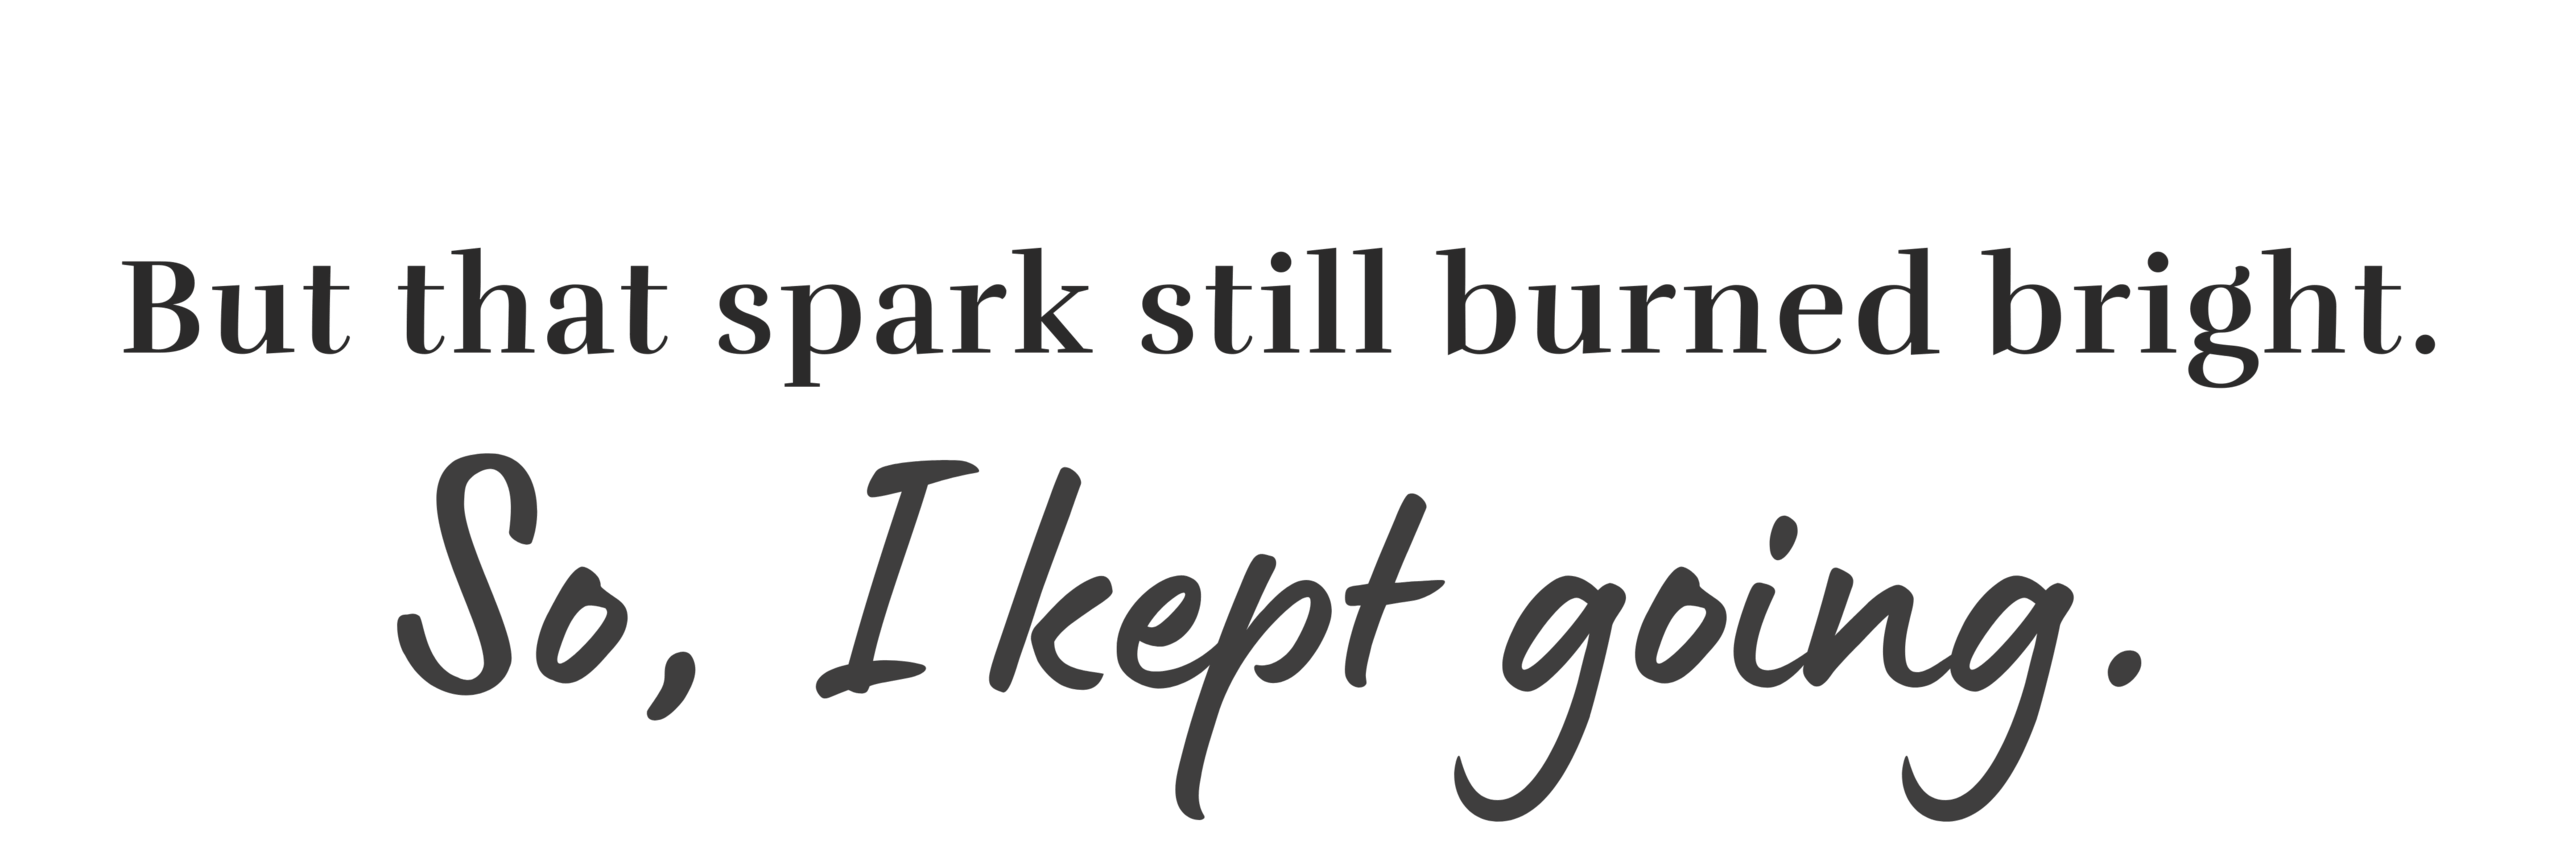 That spark still burned bright, so I kept going.